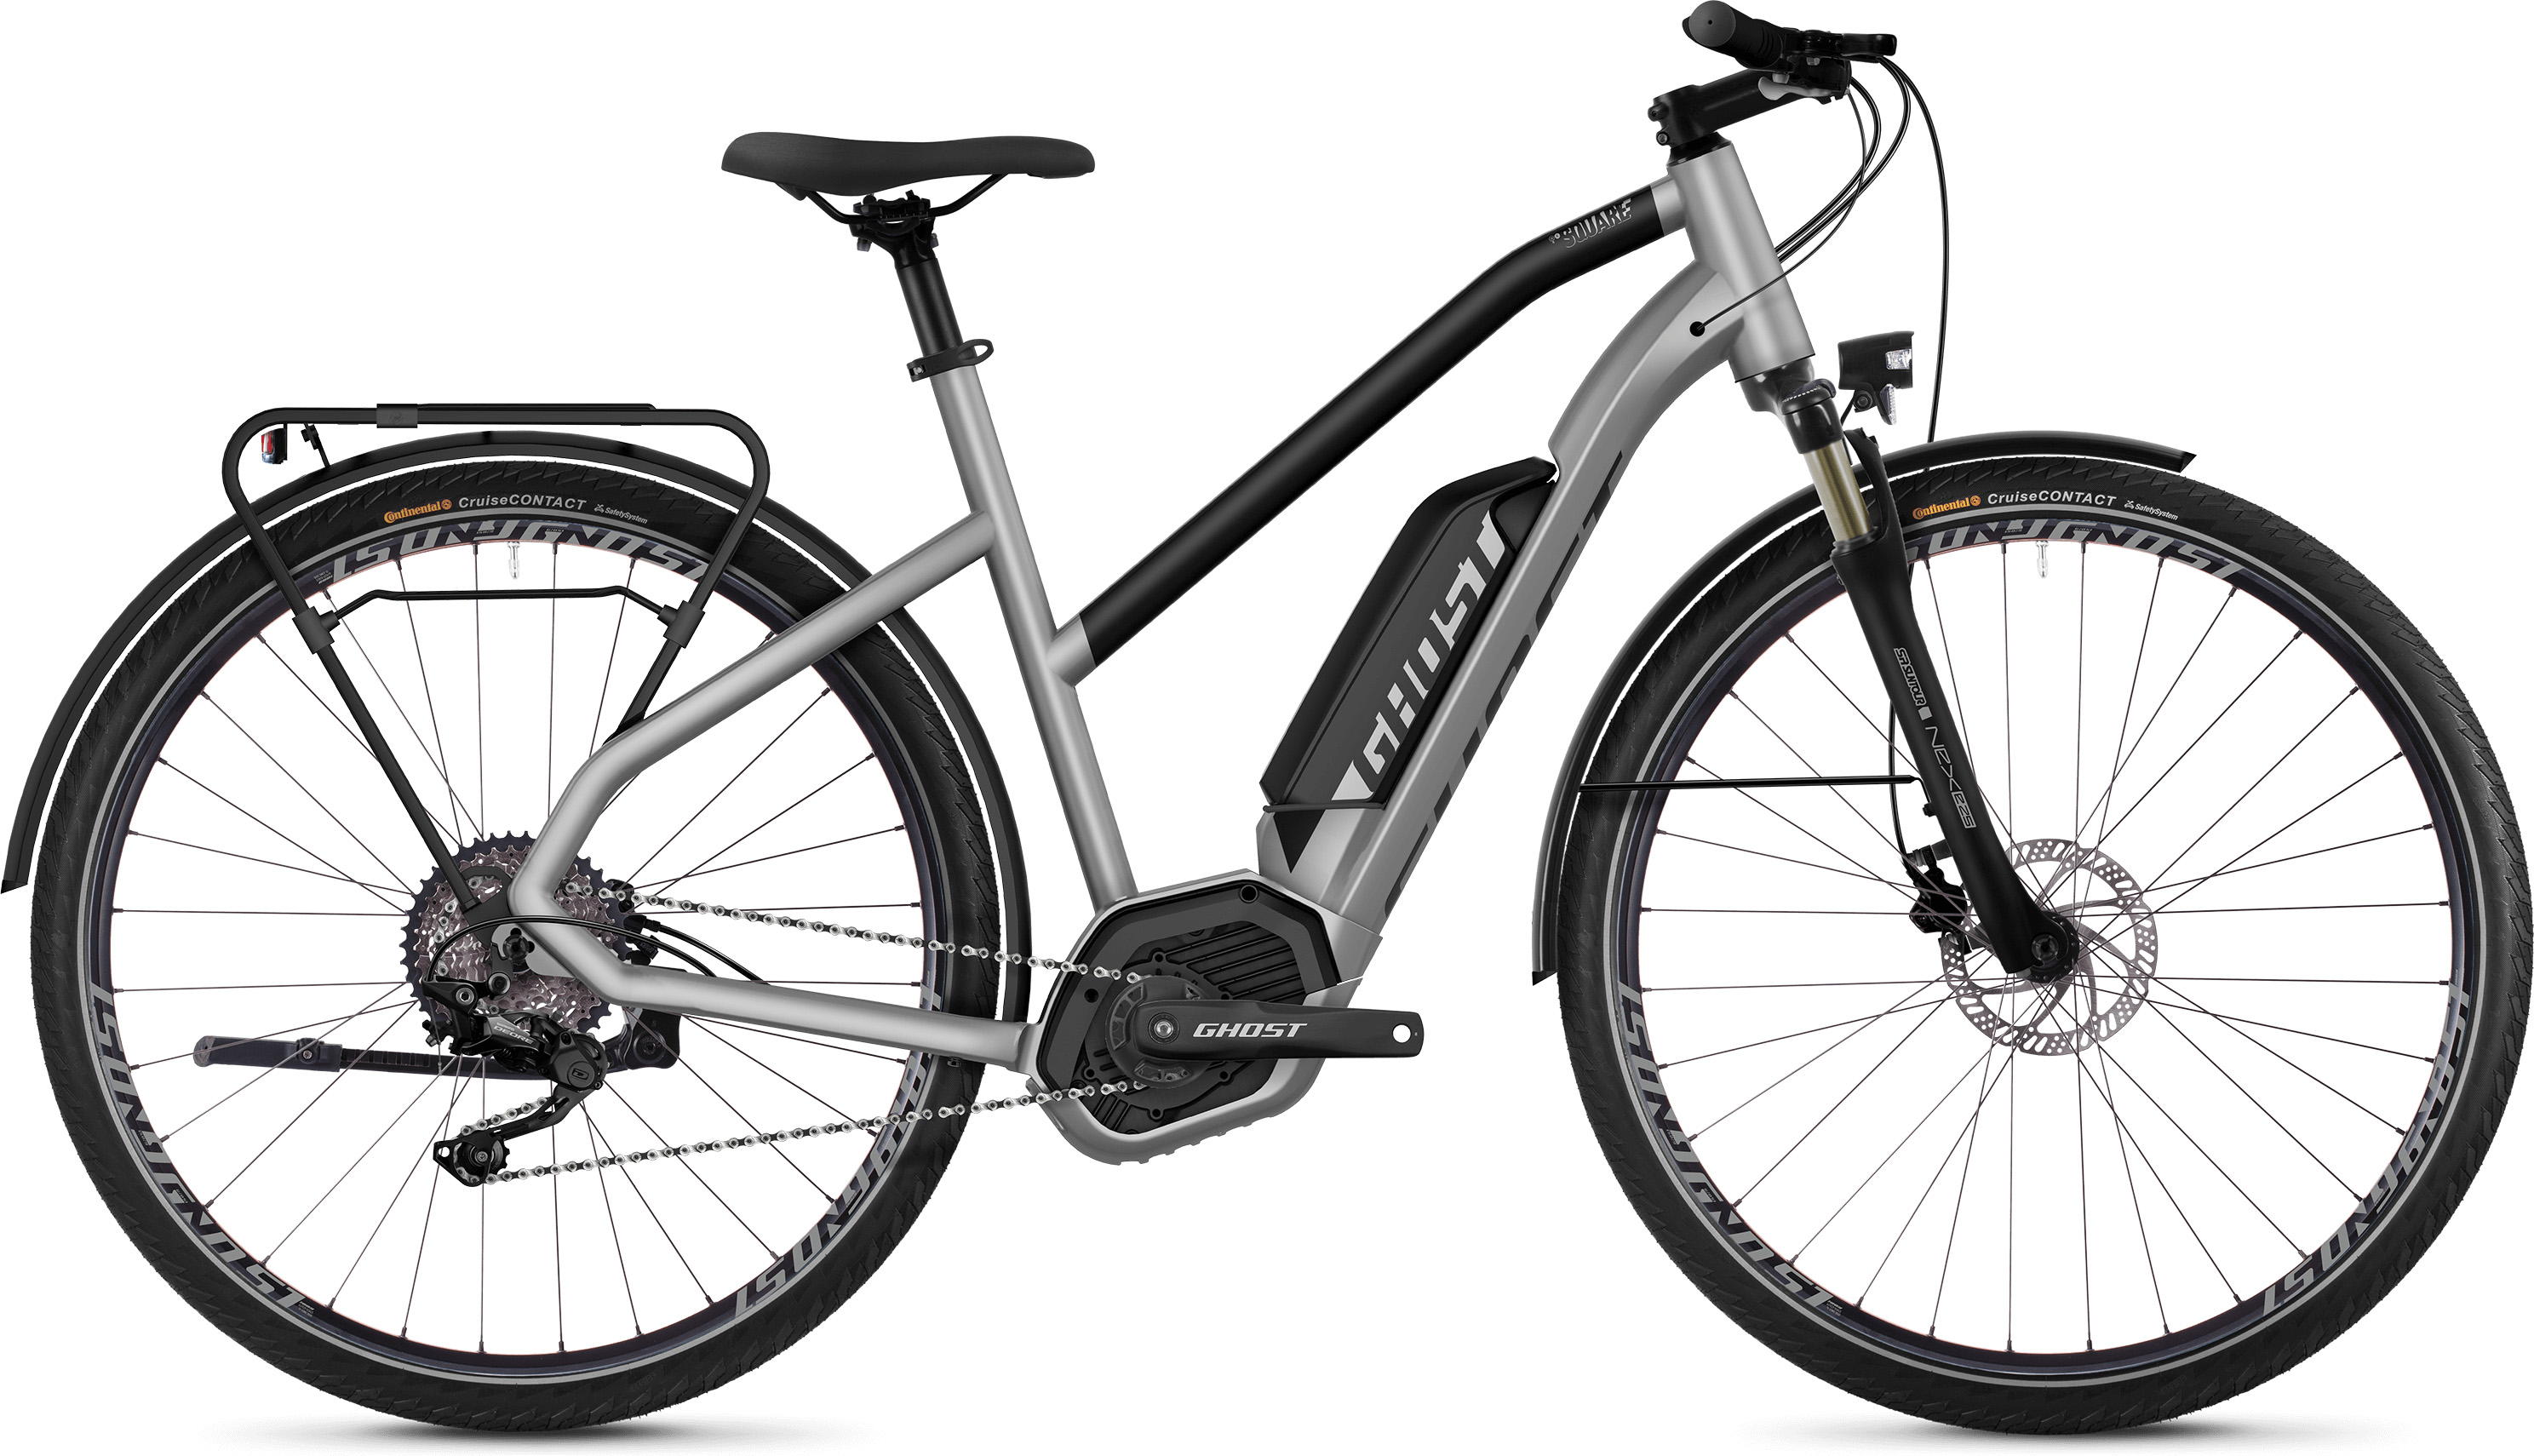 Ghost Square Trekking B2.8 Women's E-Bike (2019) | City-cykler